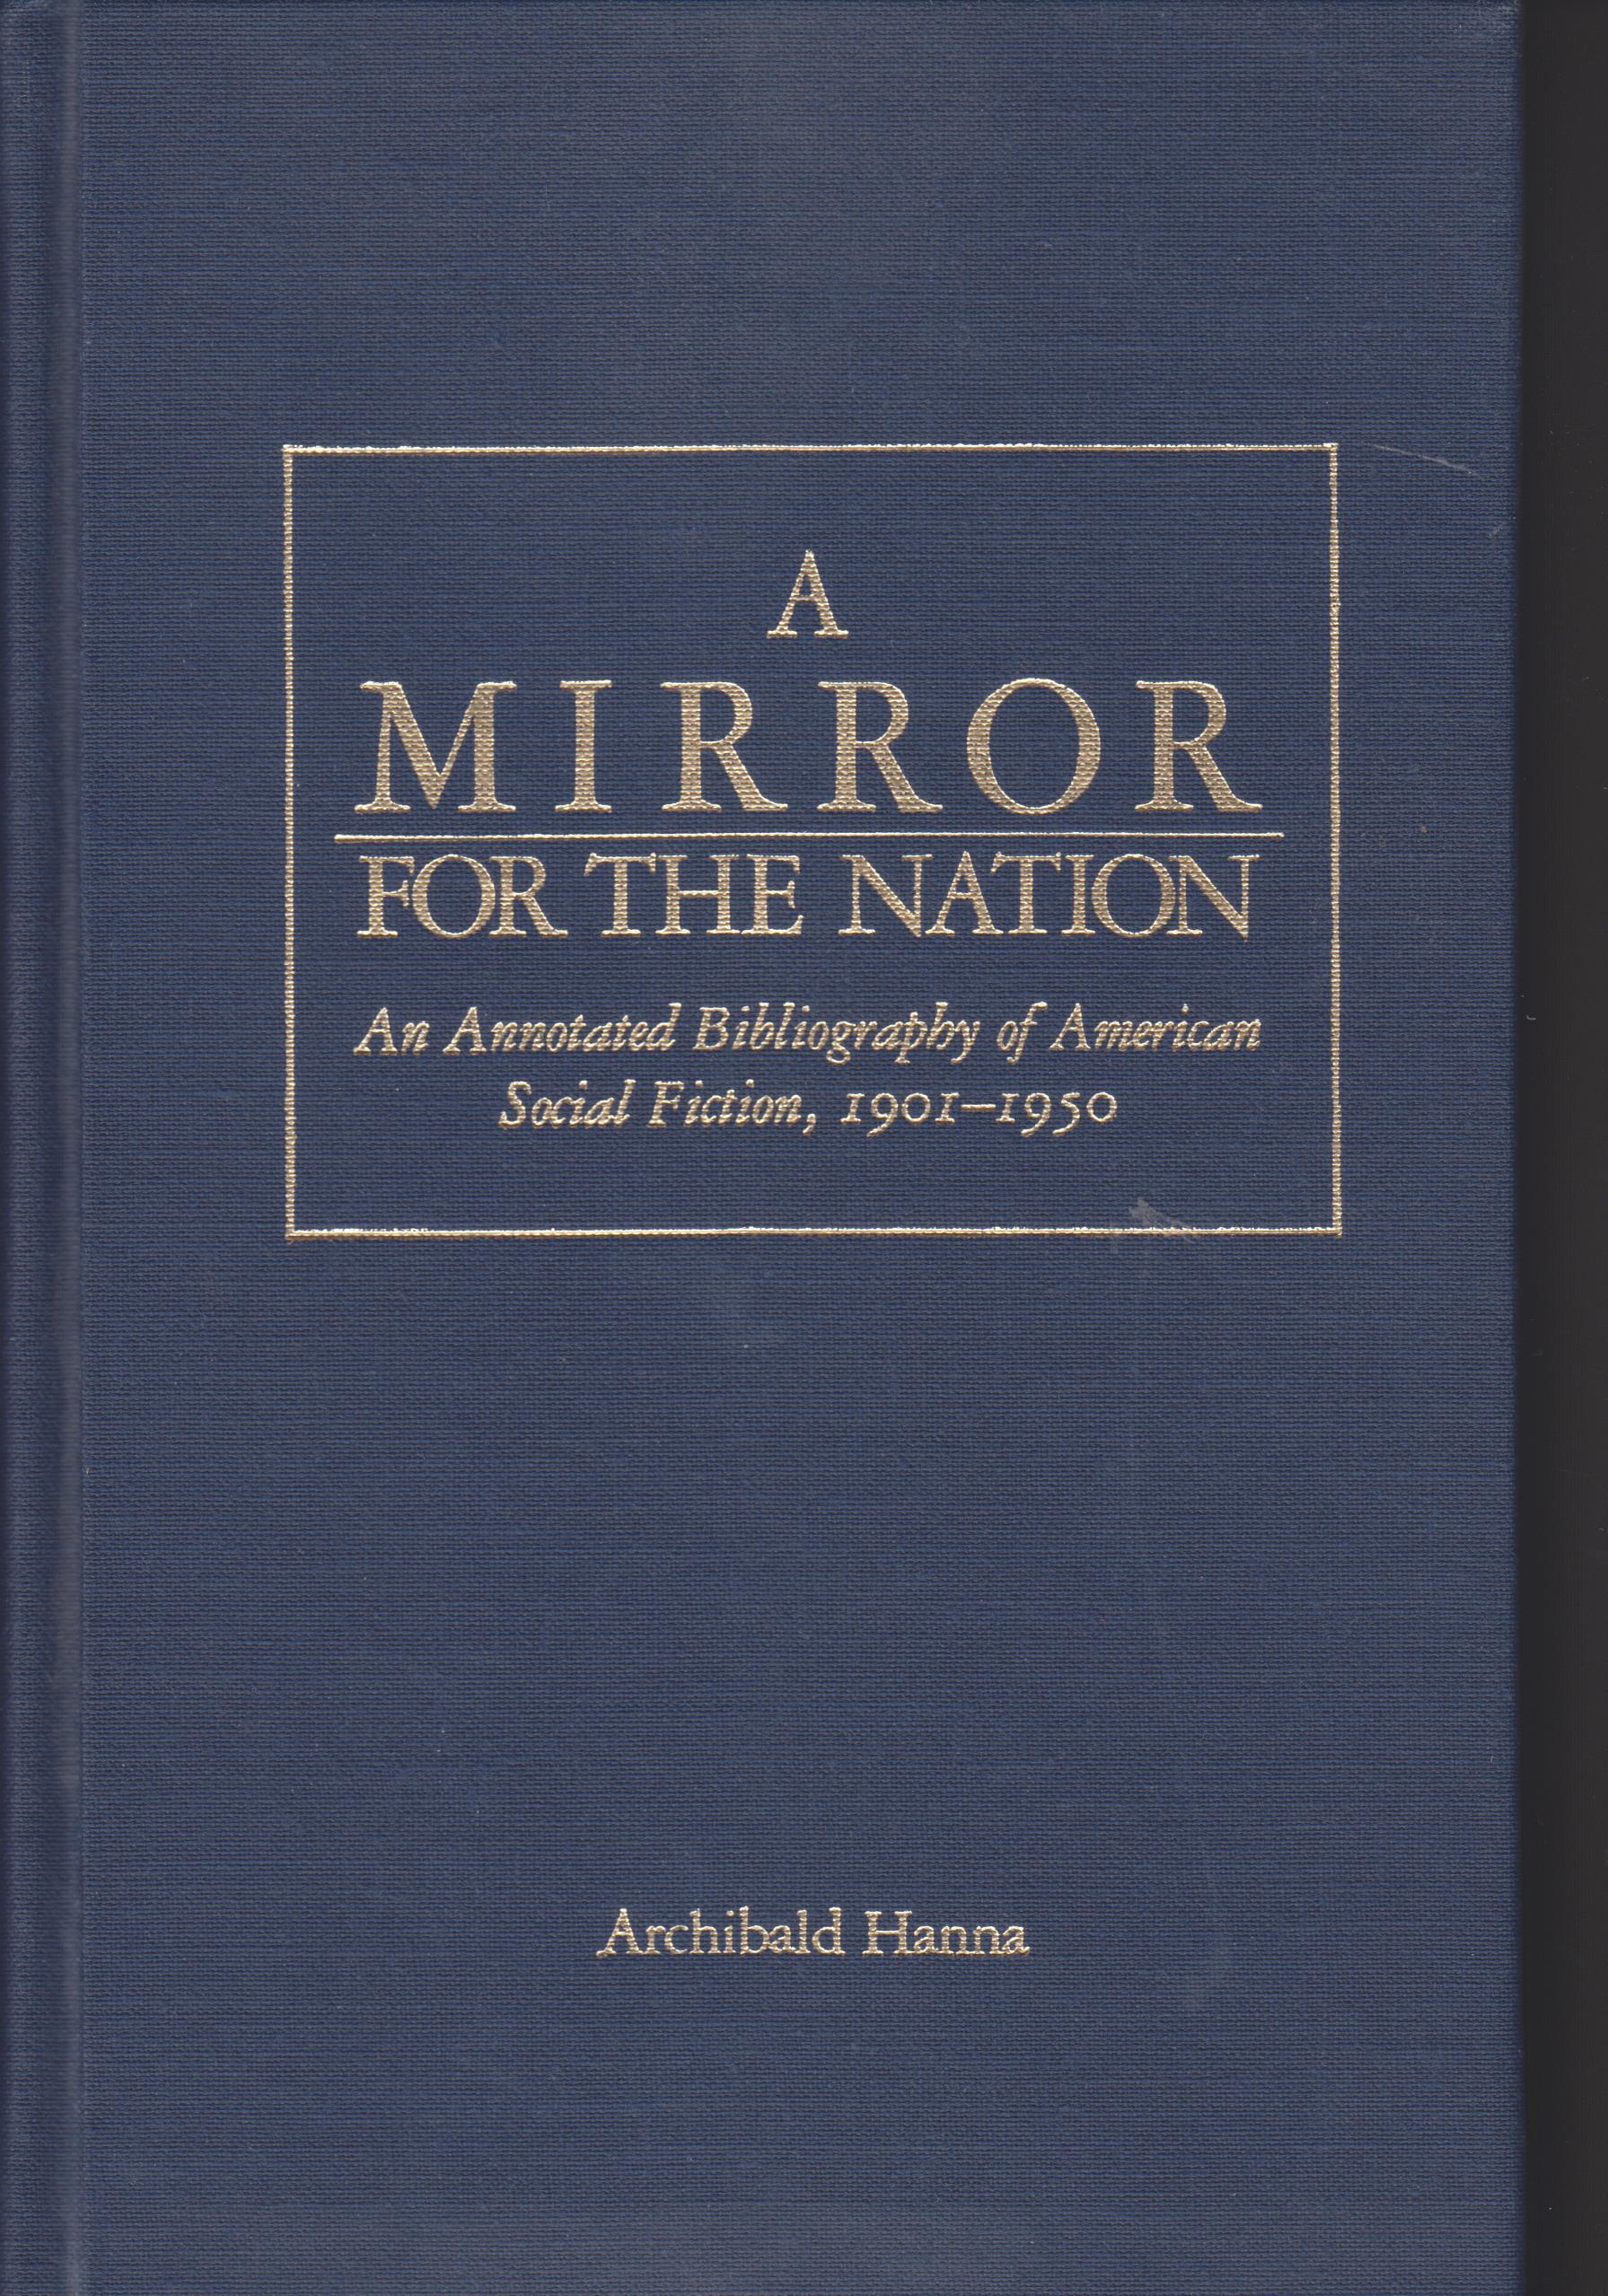 Image for A Mirror for the Nation. An Annotated Bibliography of American Social Fiction 1901-1950